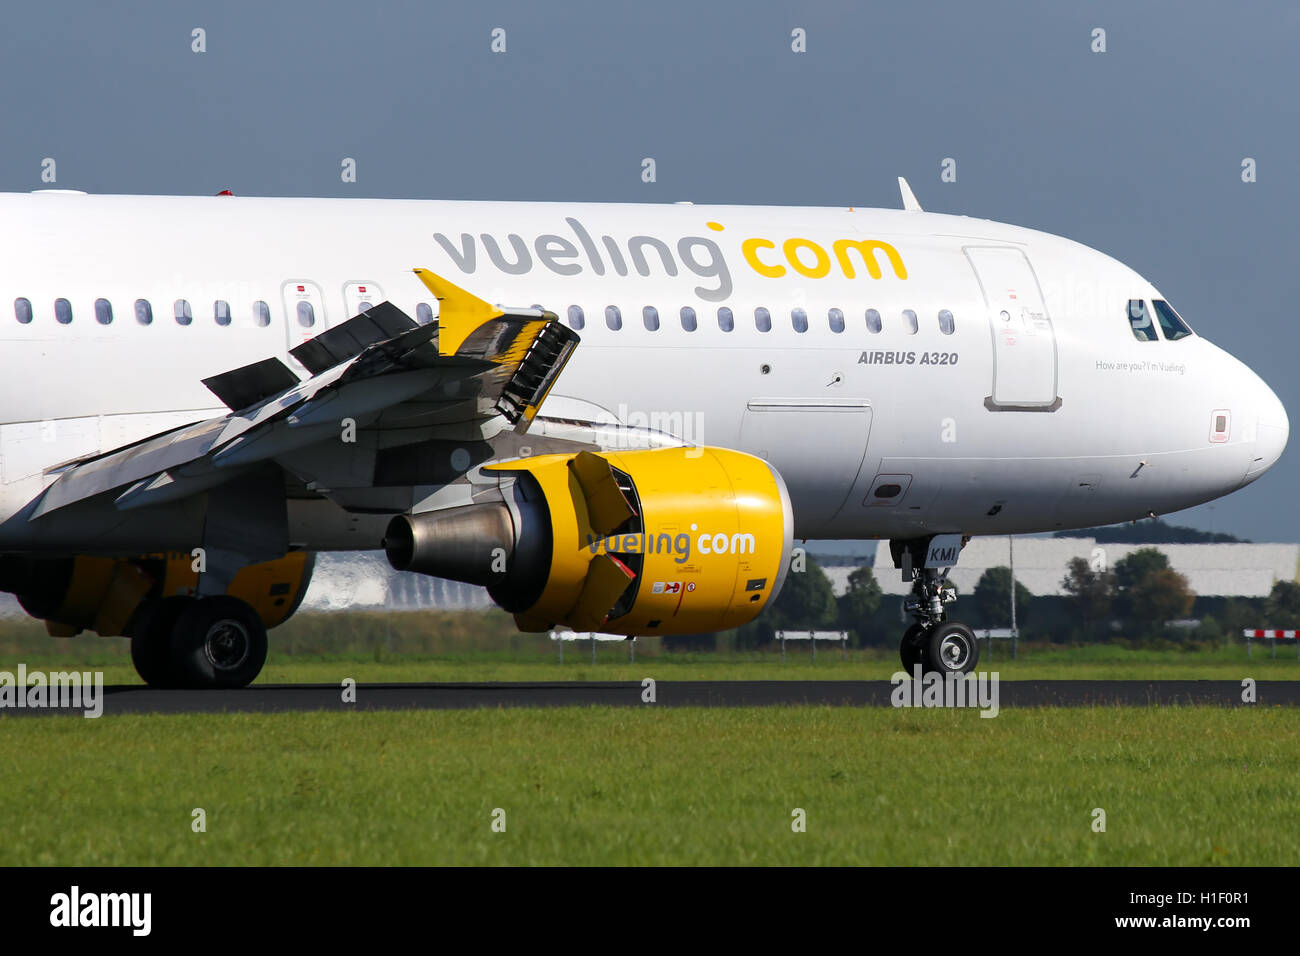 Vueling Airbus A320 touches down on runway 18R at Amsterdam Schipol airport. - Stock Image